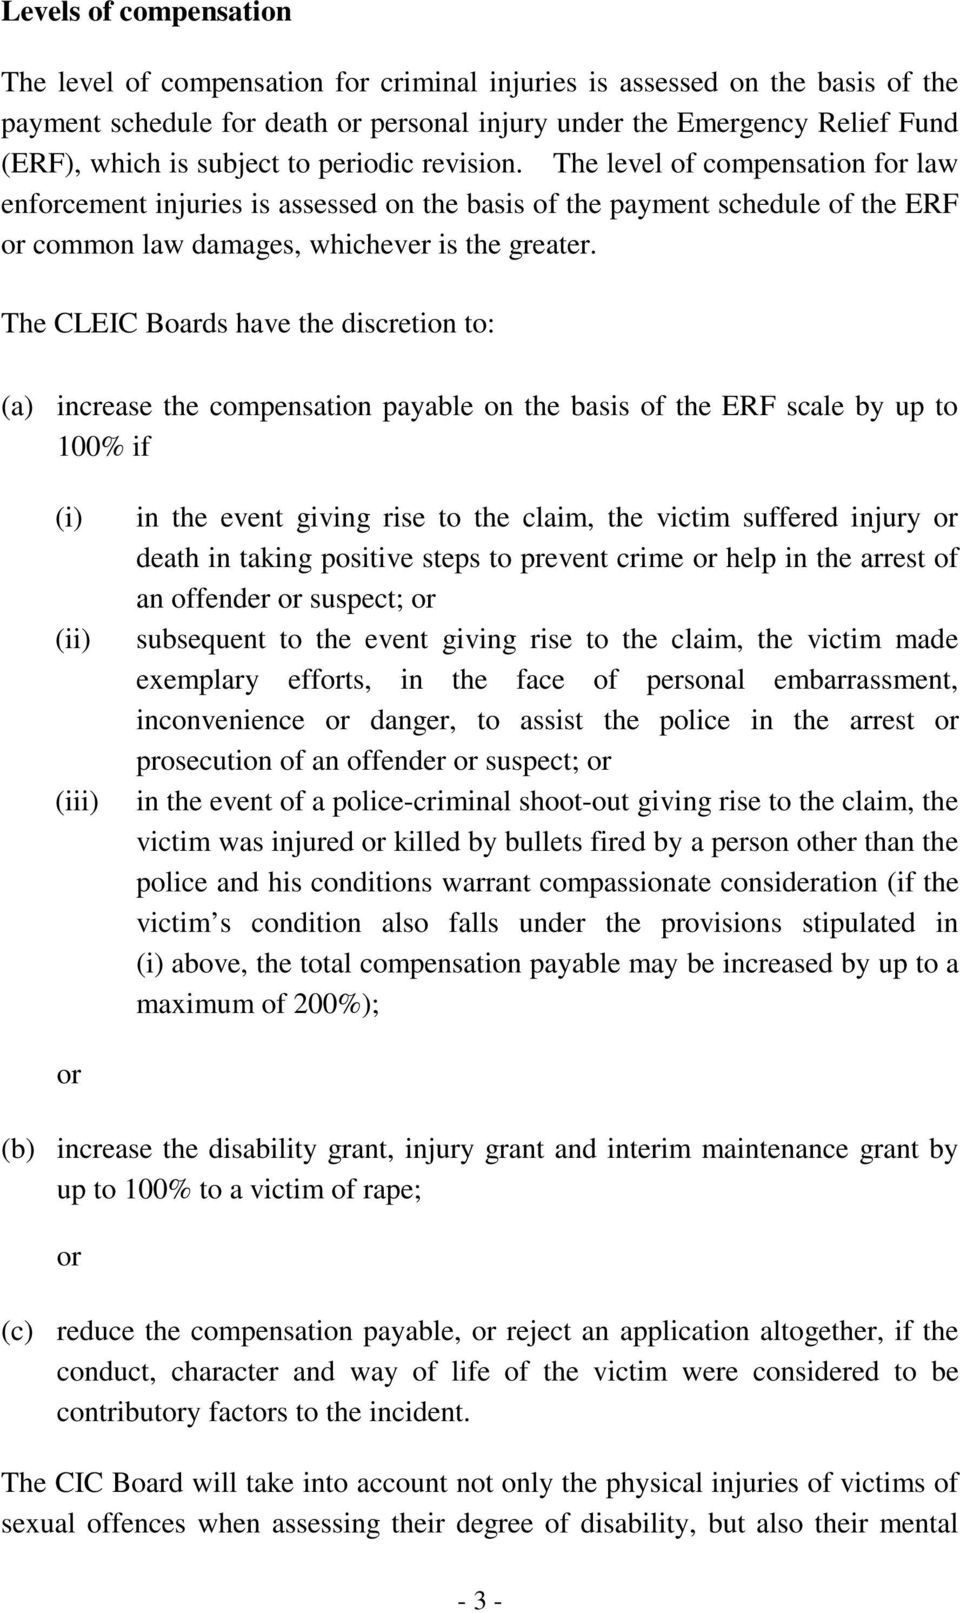 The CLEIC Boards have the discretion to: (a) increase the compensation payable on the basis of the ERF scale by up to 100% if in the event giving rise to the claim, the victim suffered injury or